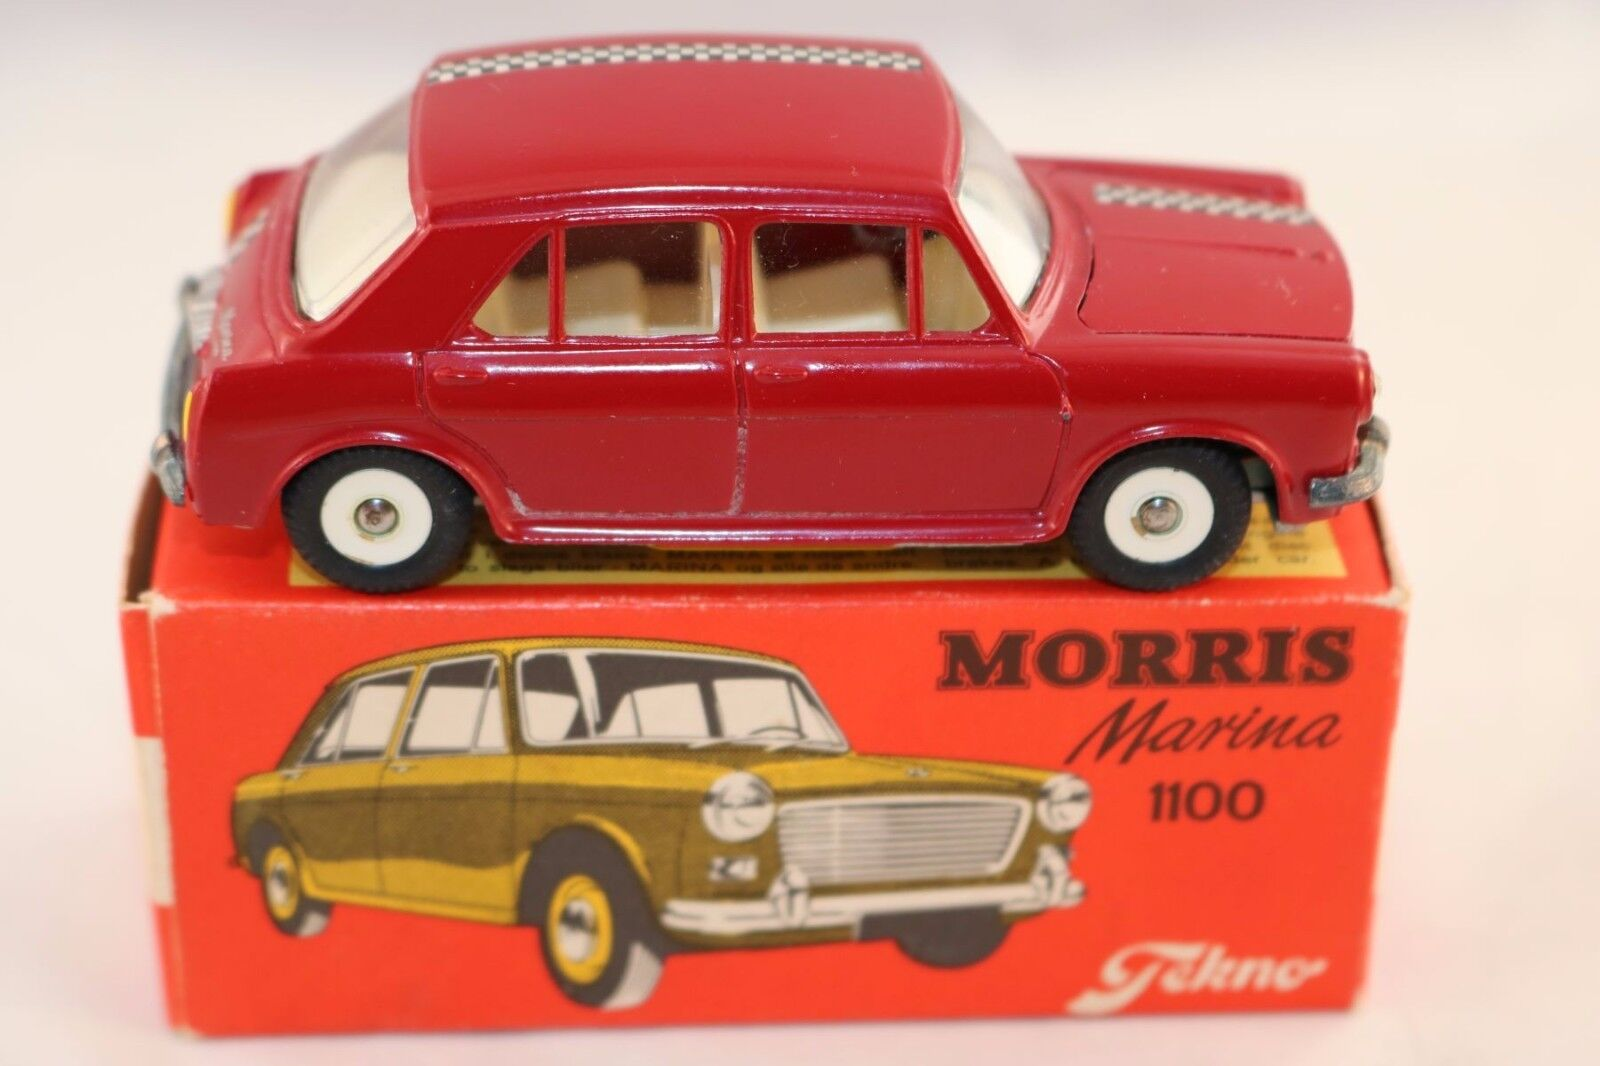 Tekno Denmark 831 Morris Marina 1100 perfect mint in box what a beauty